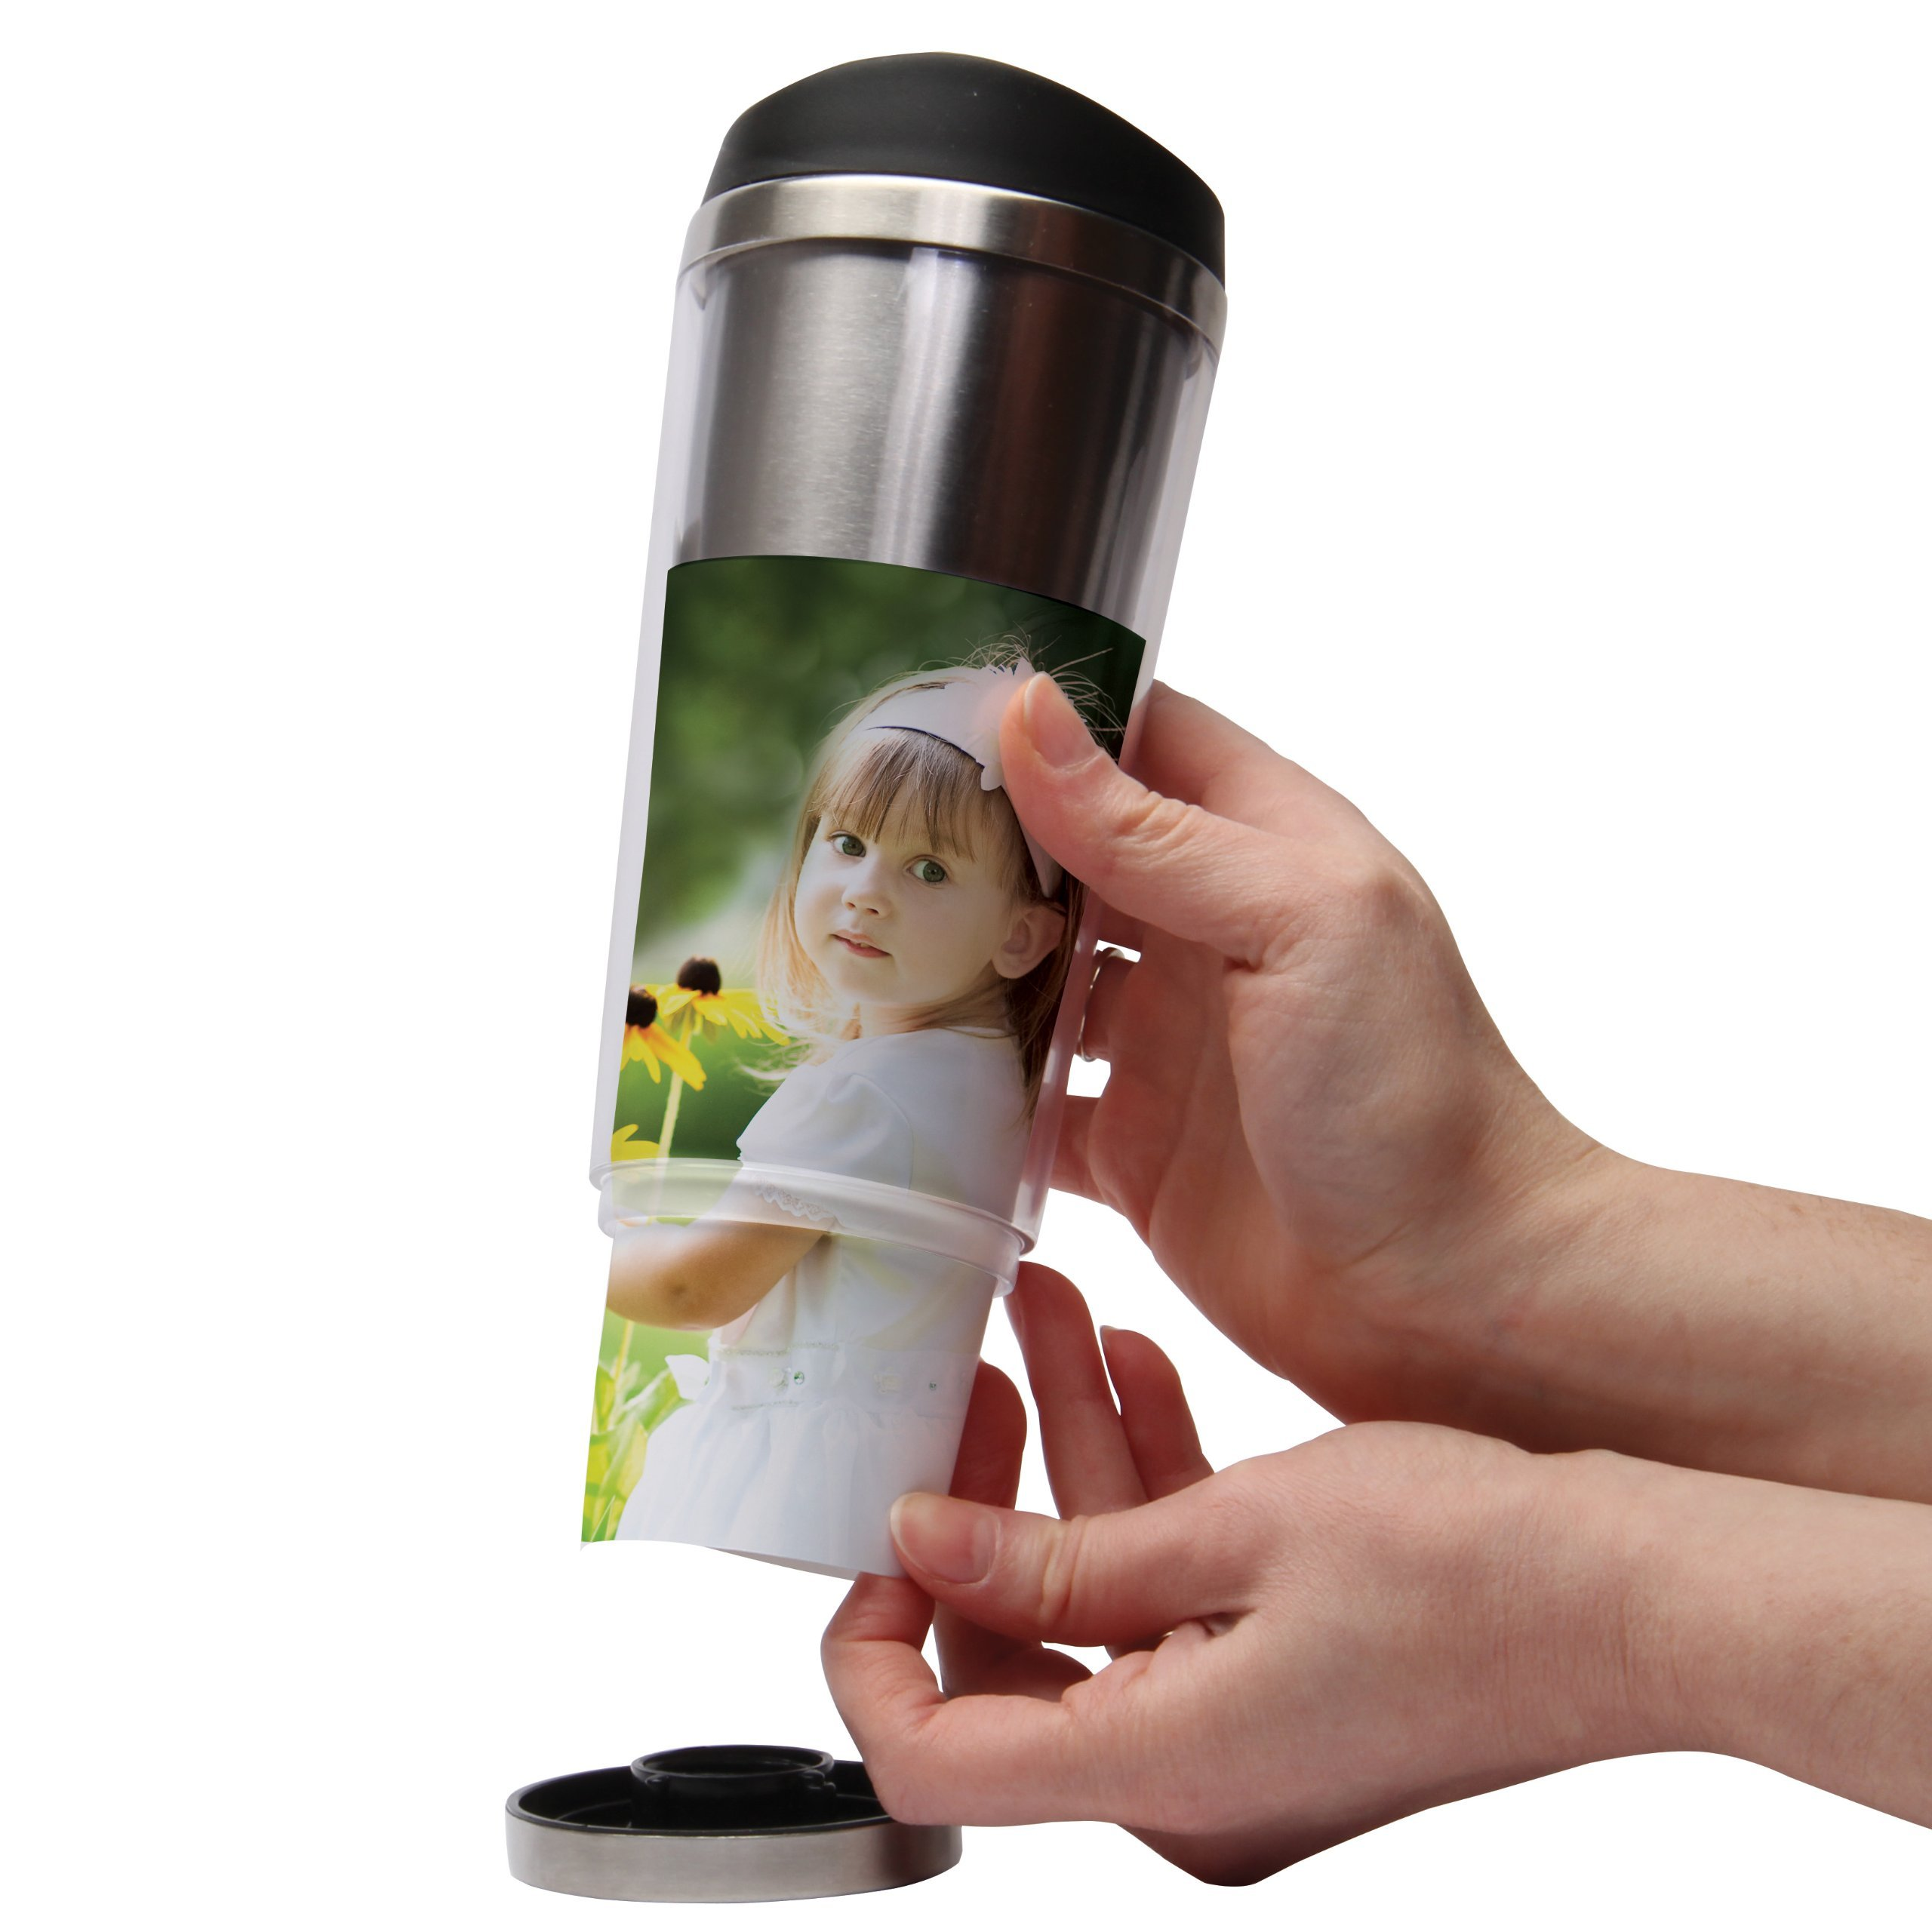 12 oz. Photo Stainless Steel Tumbler - Pack of 24